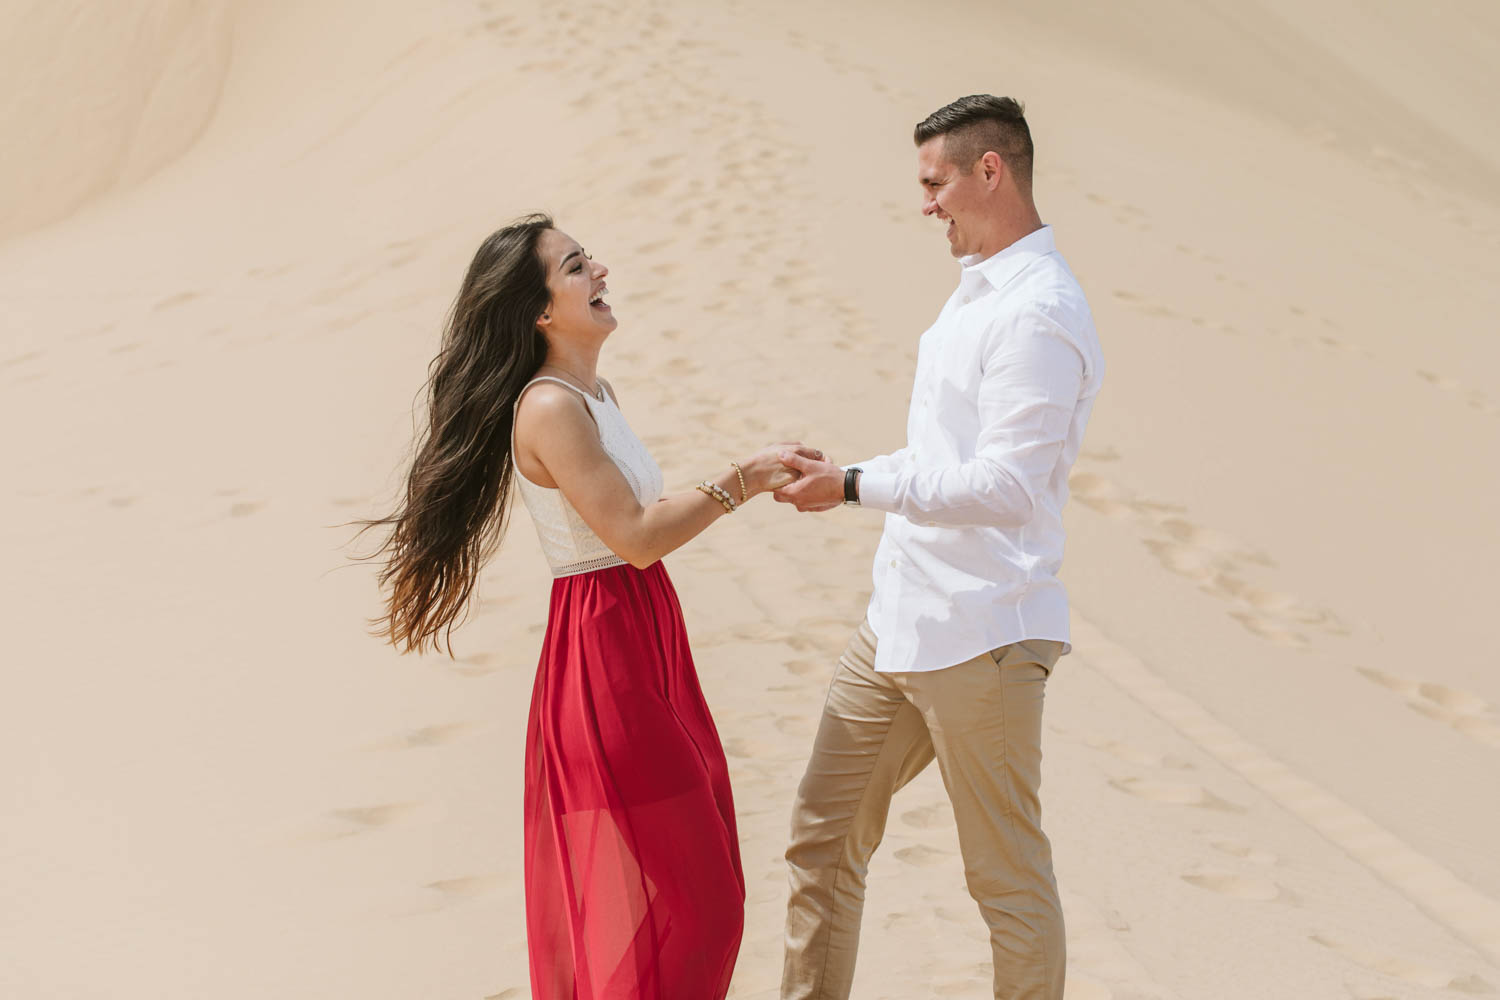 glamis_sand_dunes_couples_session_021.jpg